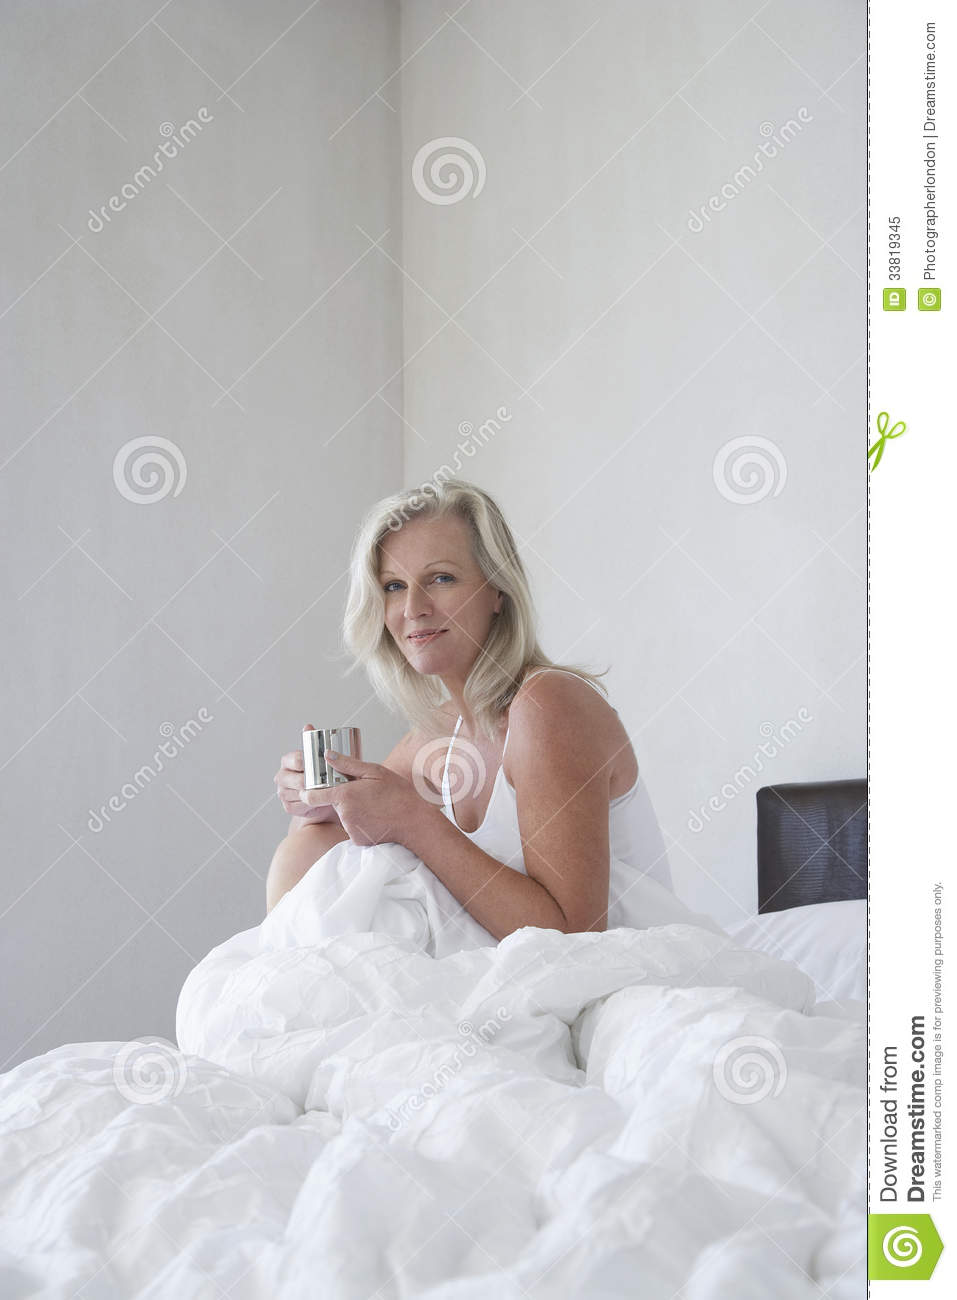 Woman Holding Coffee Cup On Bed Royalty Free Stock Photo